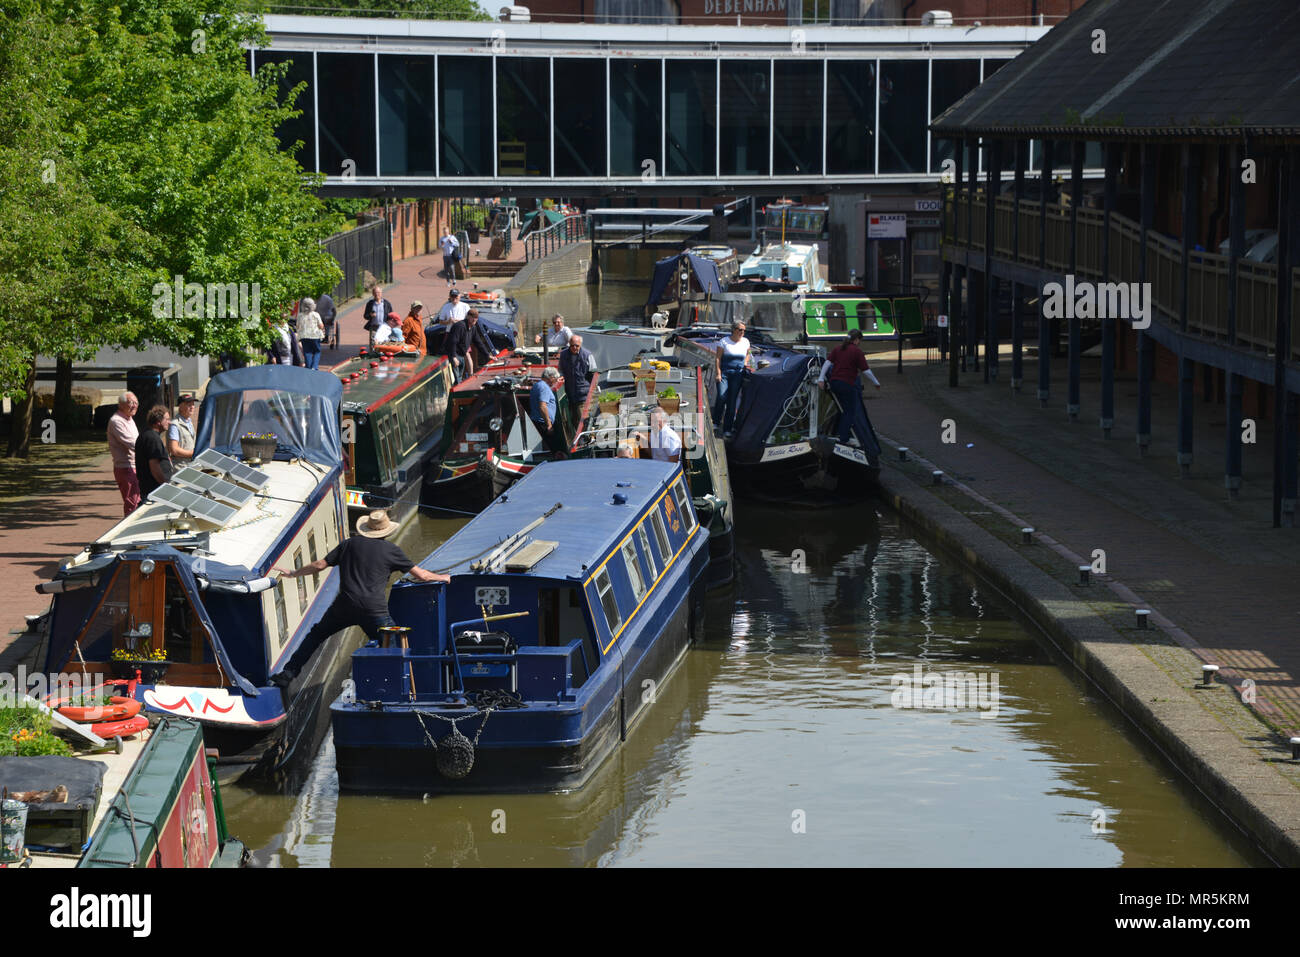 a-traffic-jam-of-narrowboats-on-the-oxford-canal-outside-castle-quay-shopping-centre-banbury-oxfordshire-efforts-being-made-to-separate-the-boats-f-MR5KRM.jpg